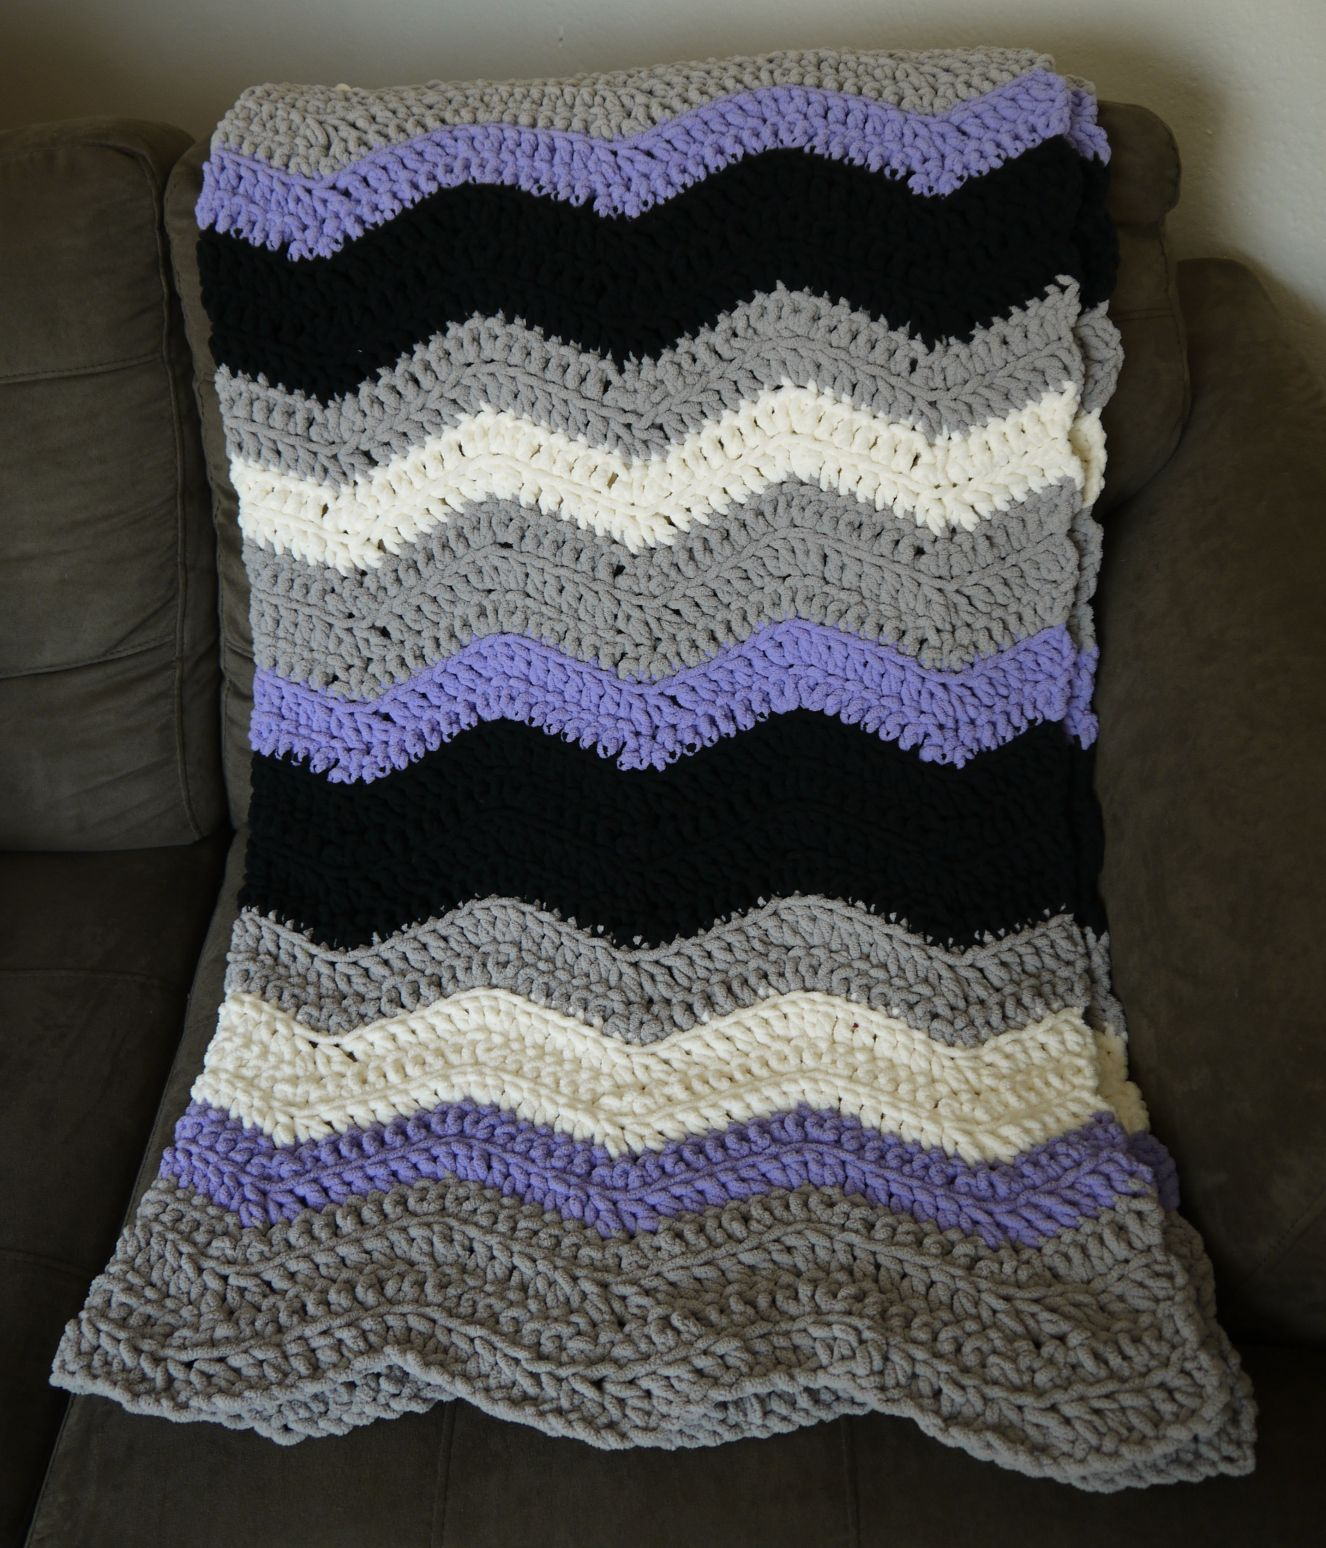 Bernat Blanket Yarn Crochet Patterns Best Design